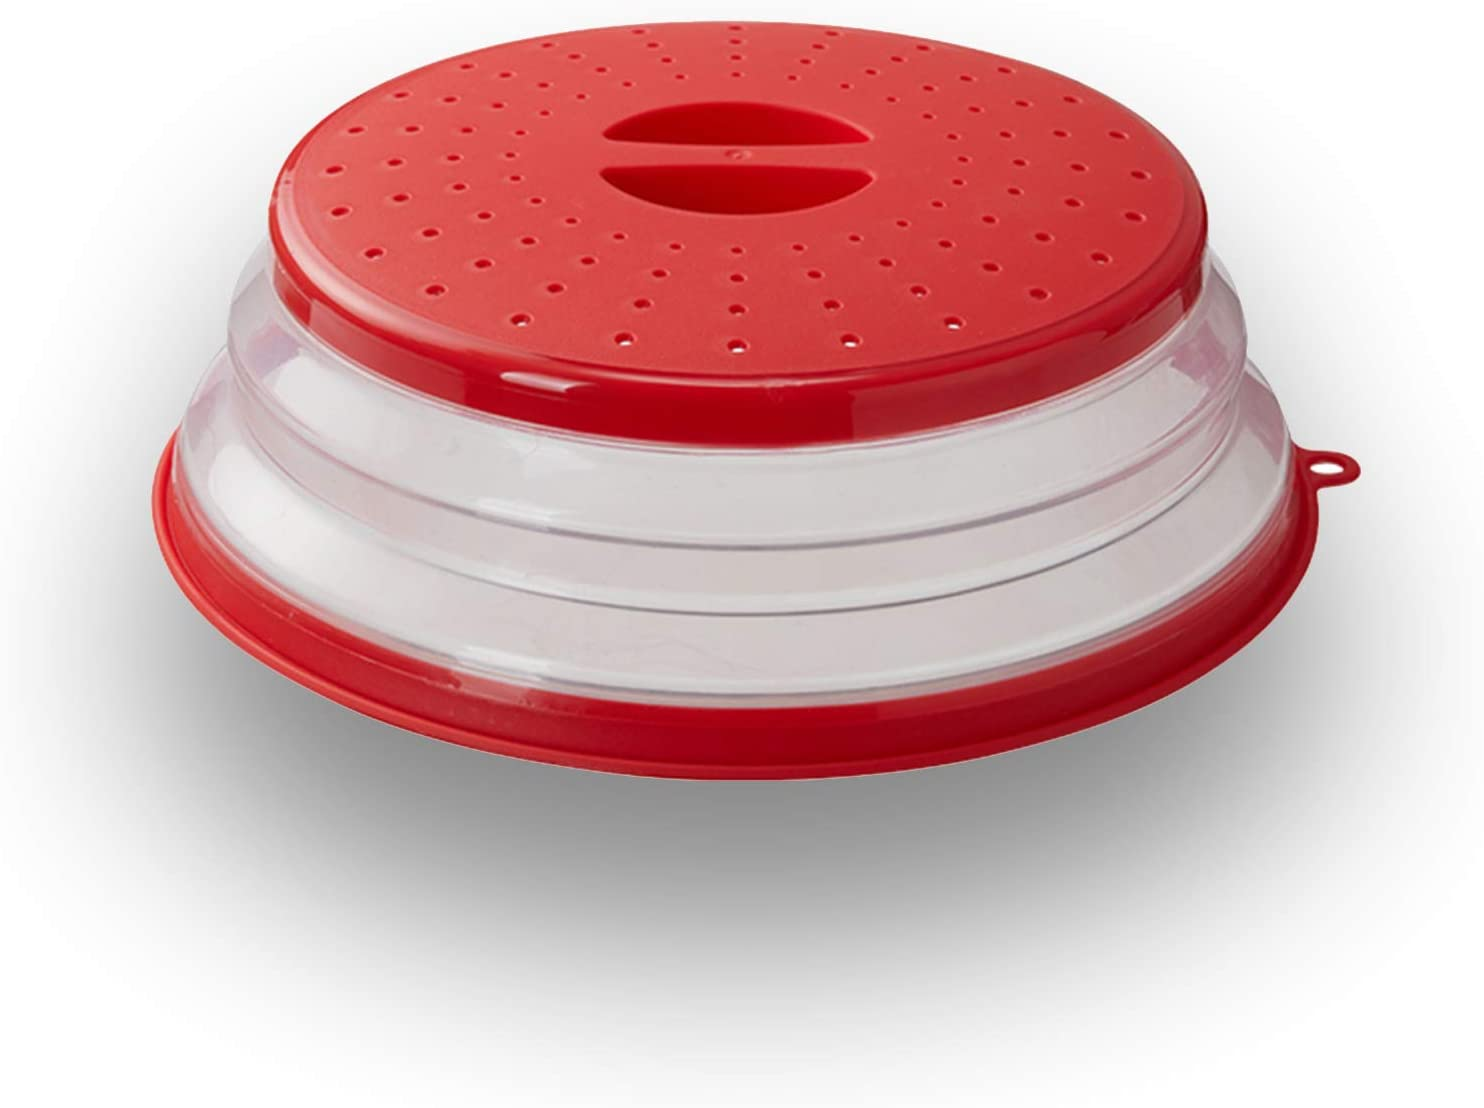 WENWELL Vented Collapsible Microwave Splatter Cover for Food,Kitchen dish bowl Plate lid Can be Hung,Dishwasher-Safe,Fruit Drainer Basket,BPA-Free Silicone & Plastic,Red